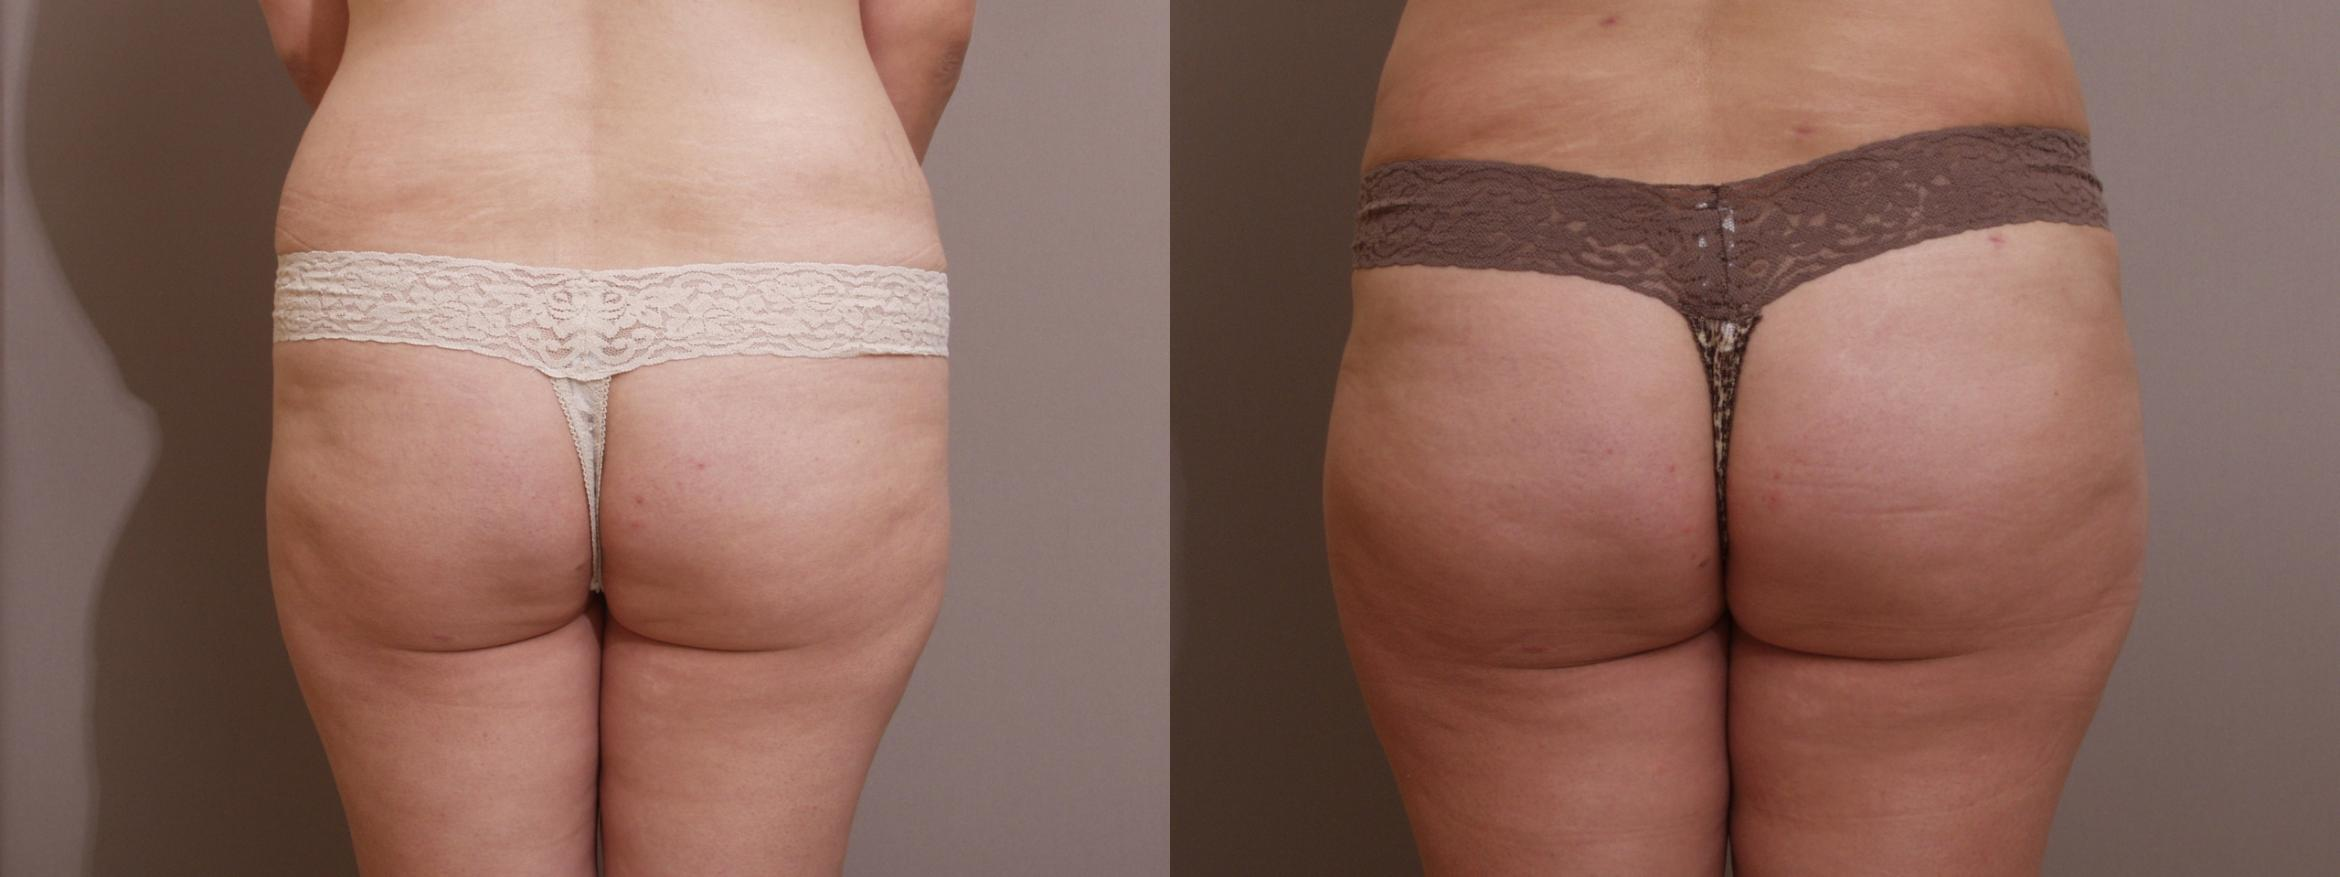 Brazilian Buttock Lift Case 138 Before & After View #1 | Webster, TX | Houston Plastic and Reconstructive Surgery